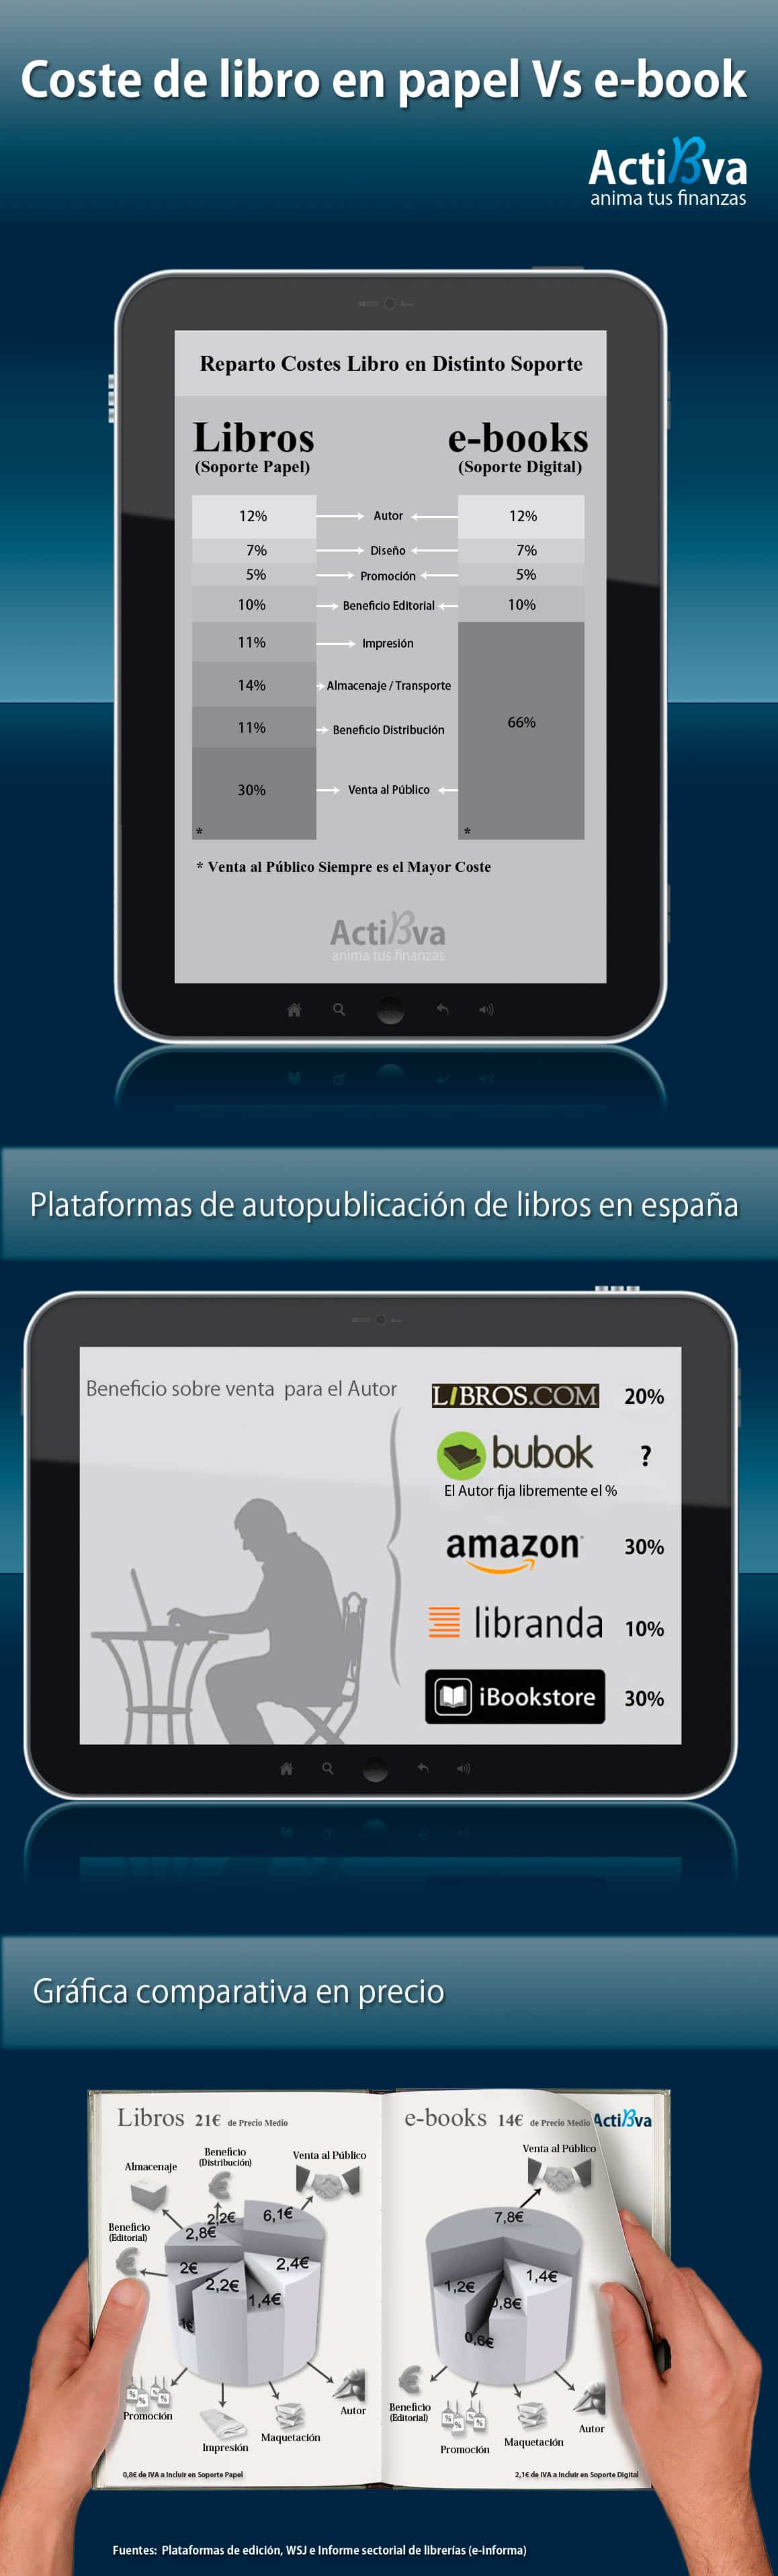 coste de libros en papel vs ebooks